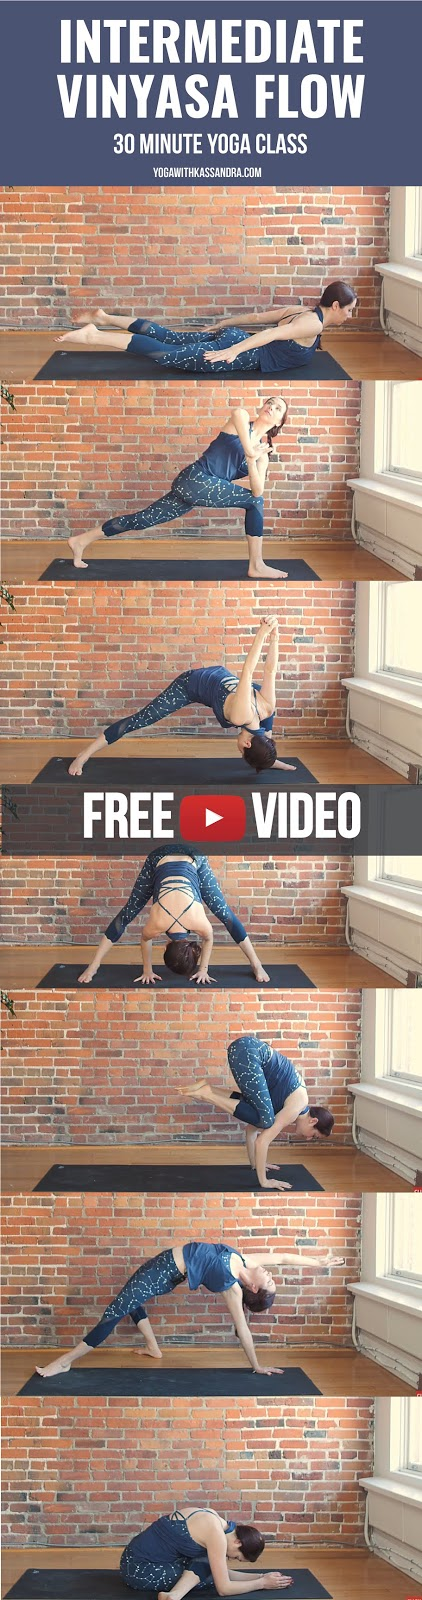 If you are a yoga teacher looking for some motivation to mix up your personal yoga practice, or an intermediate student who just wants to spice up your home flows, give this sequence a go.